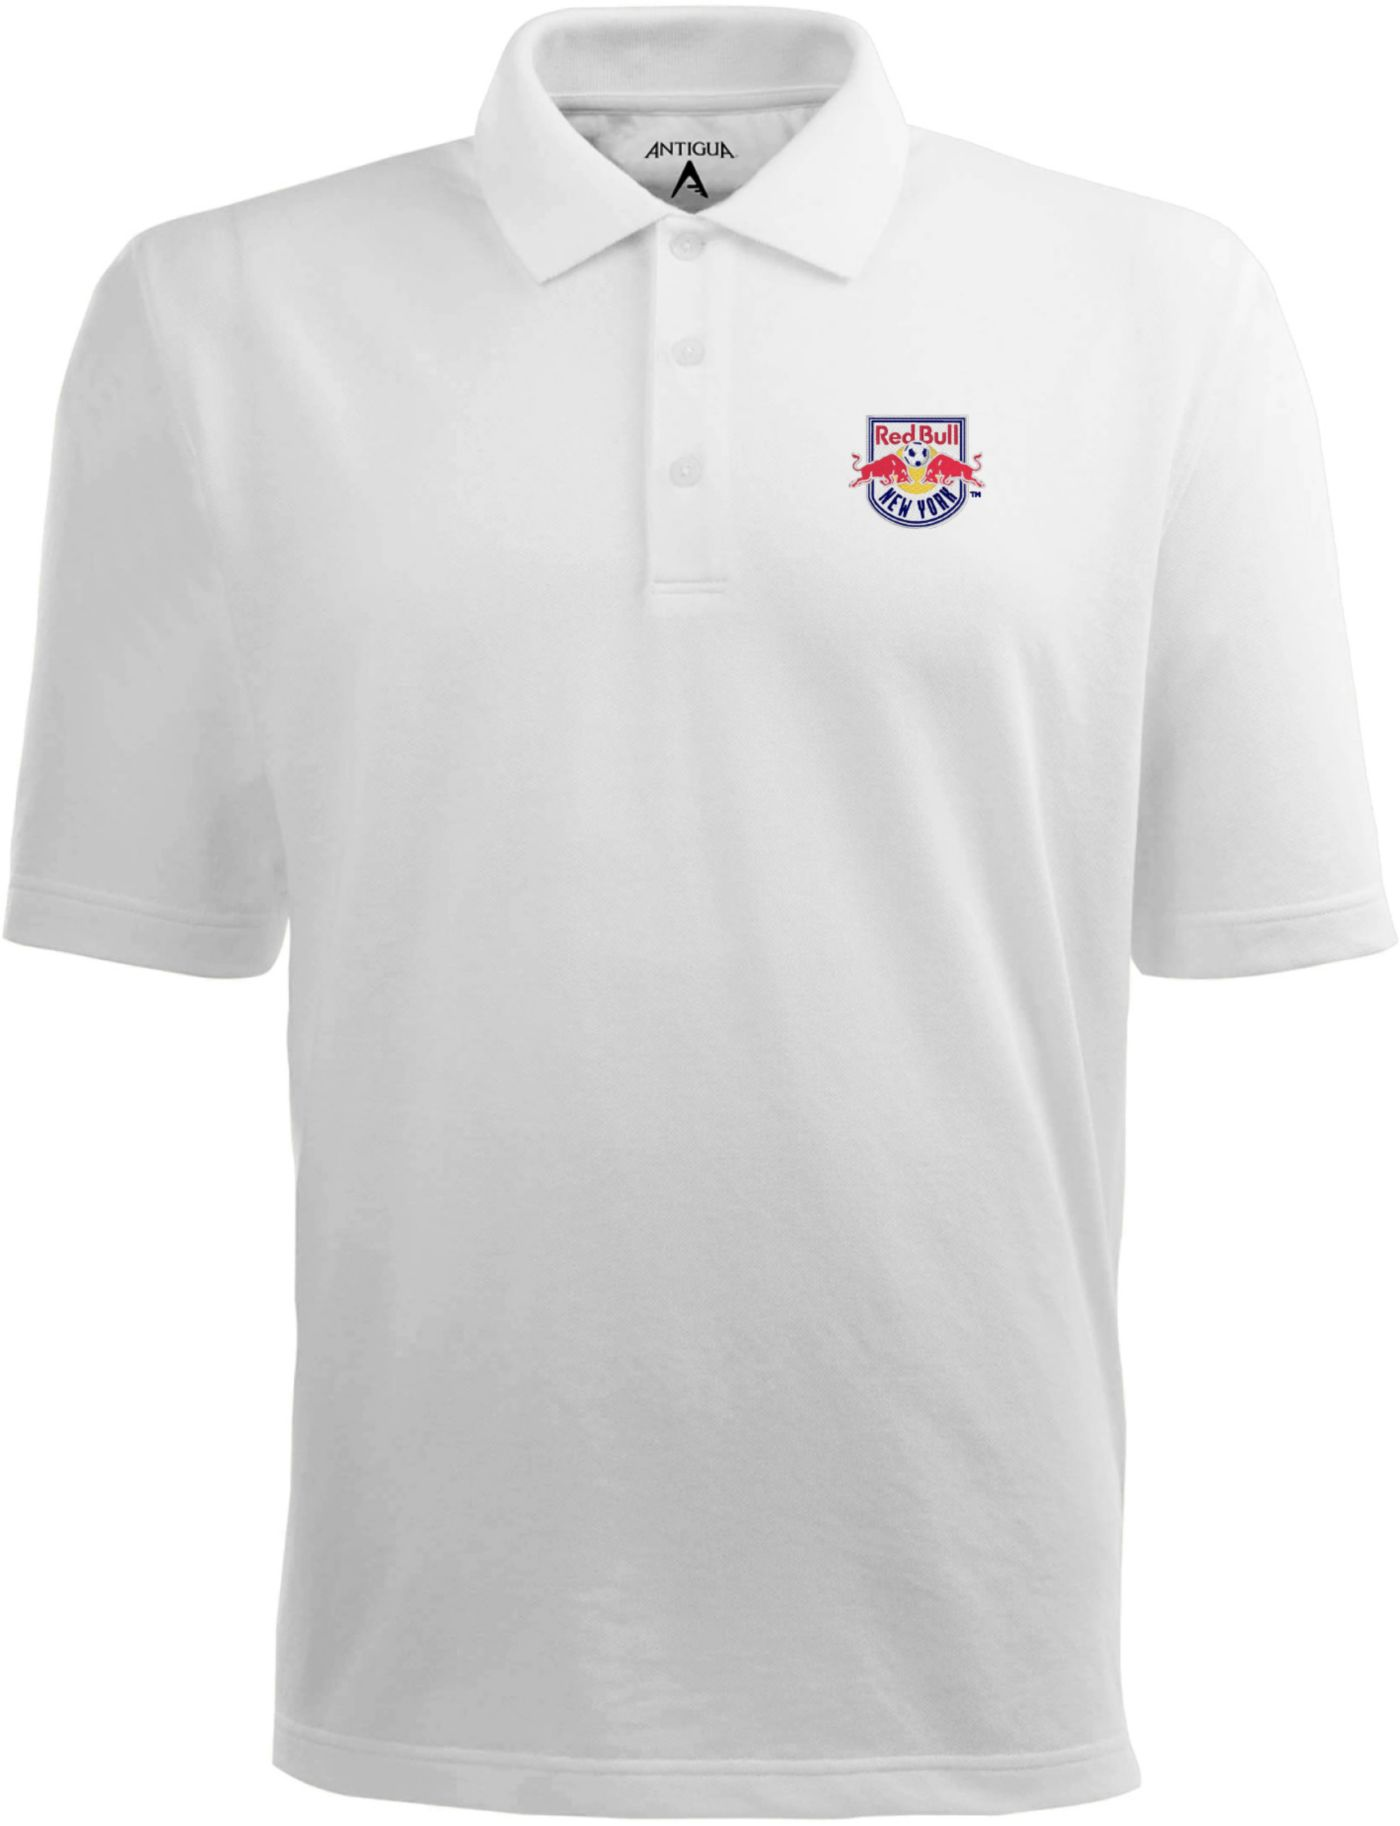 Antigua Men's New York Red Bulls Xtra-Lite Pique Performance White Polo